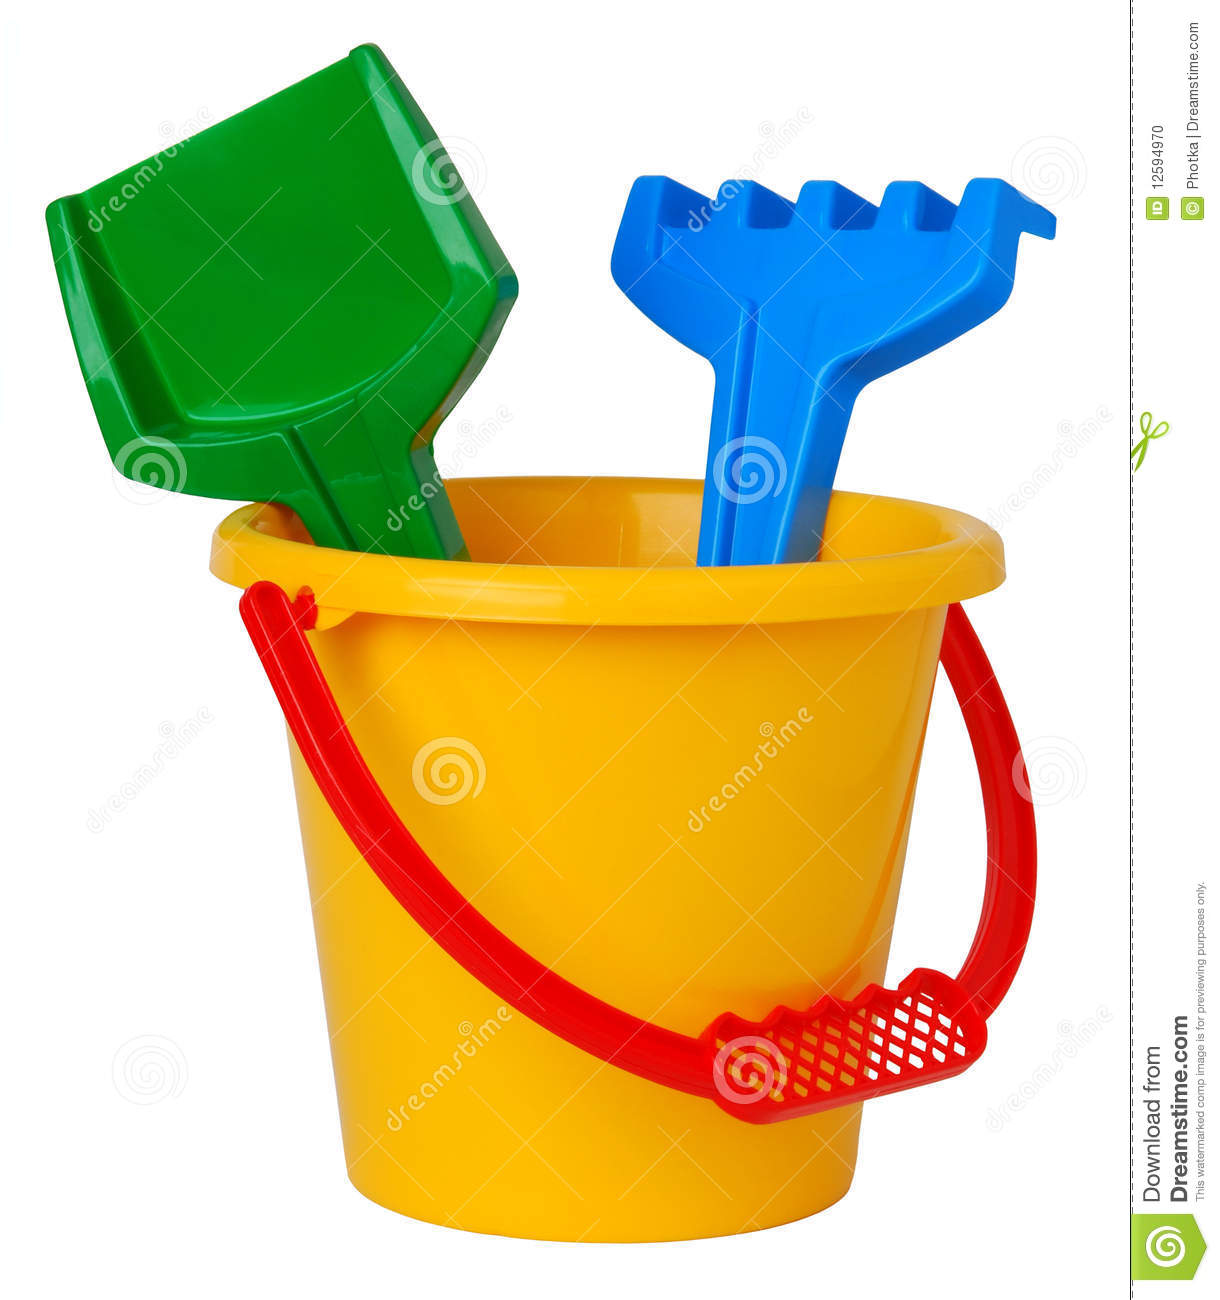 Toy plastic bucket with shovel and rake isolated on white background.